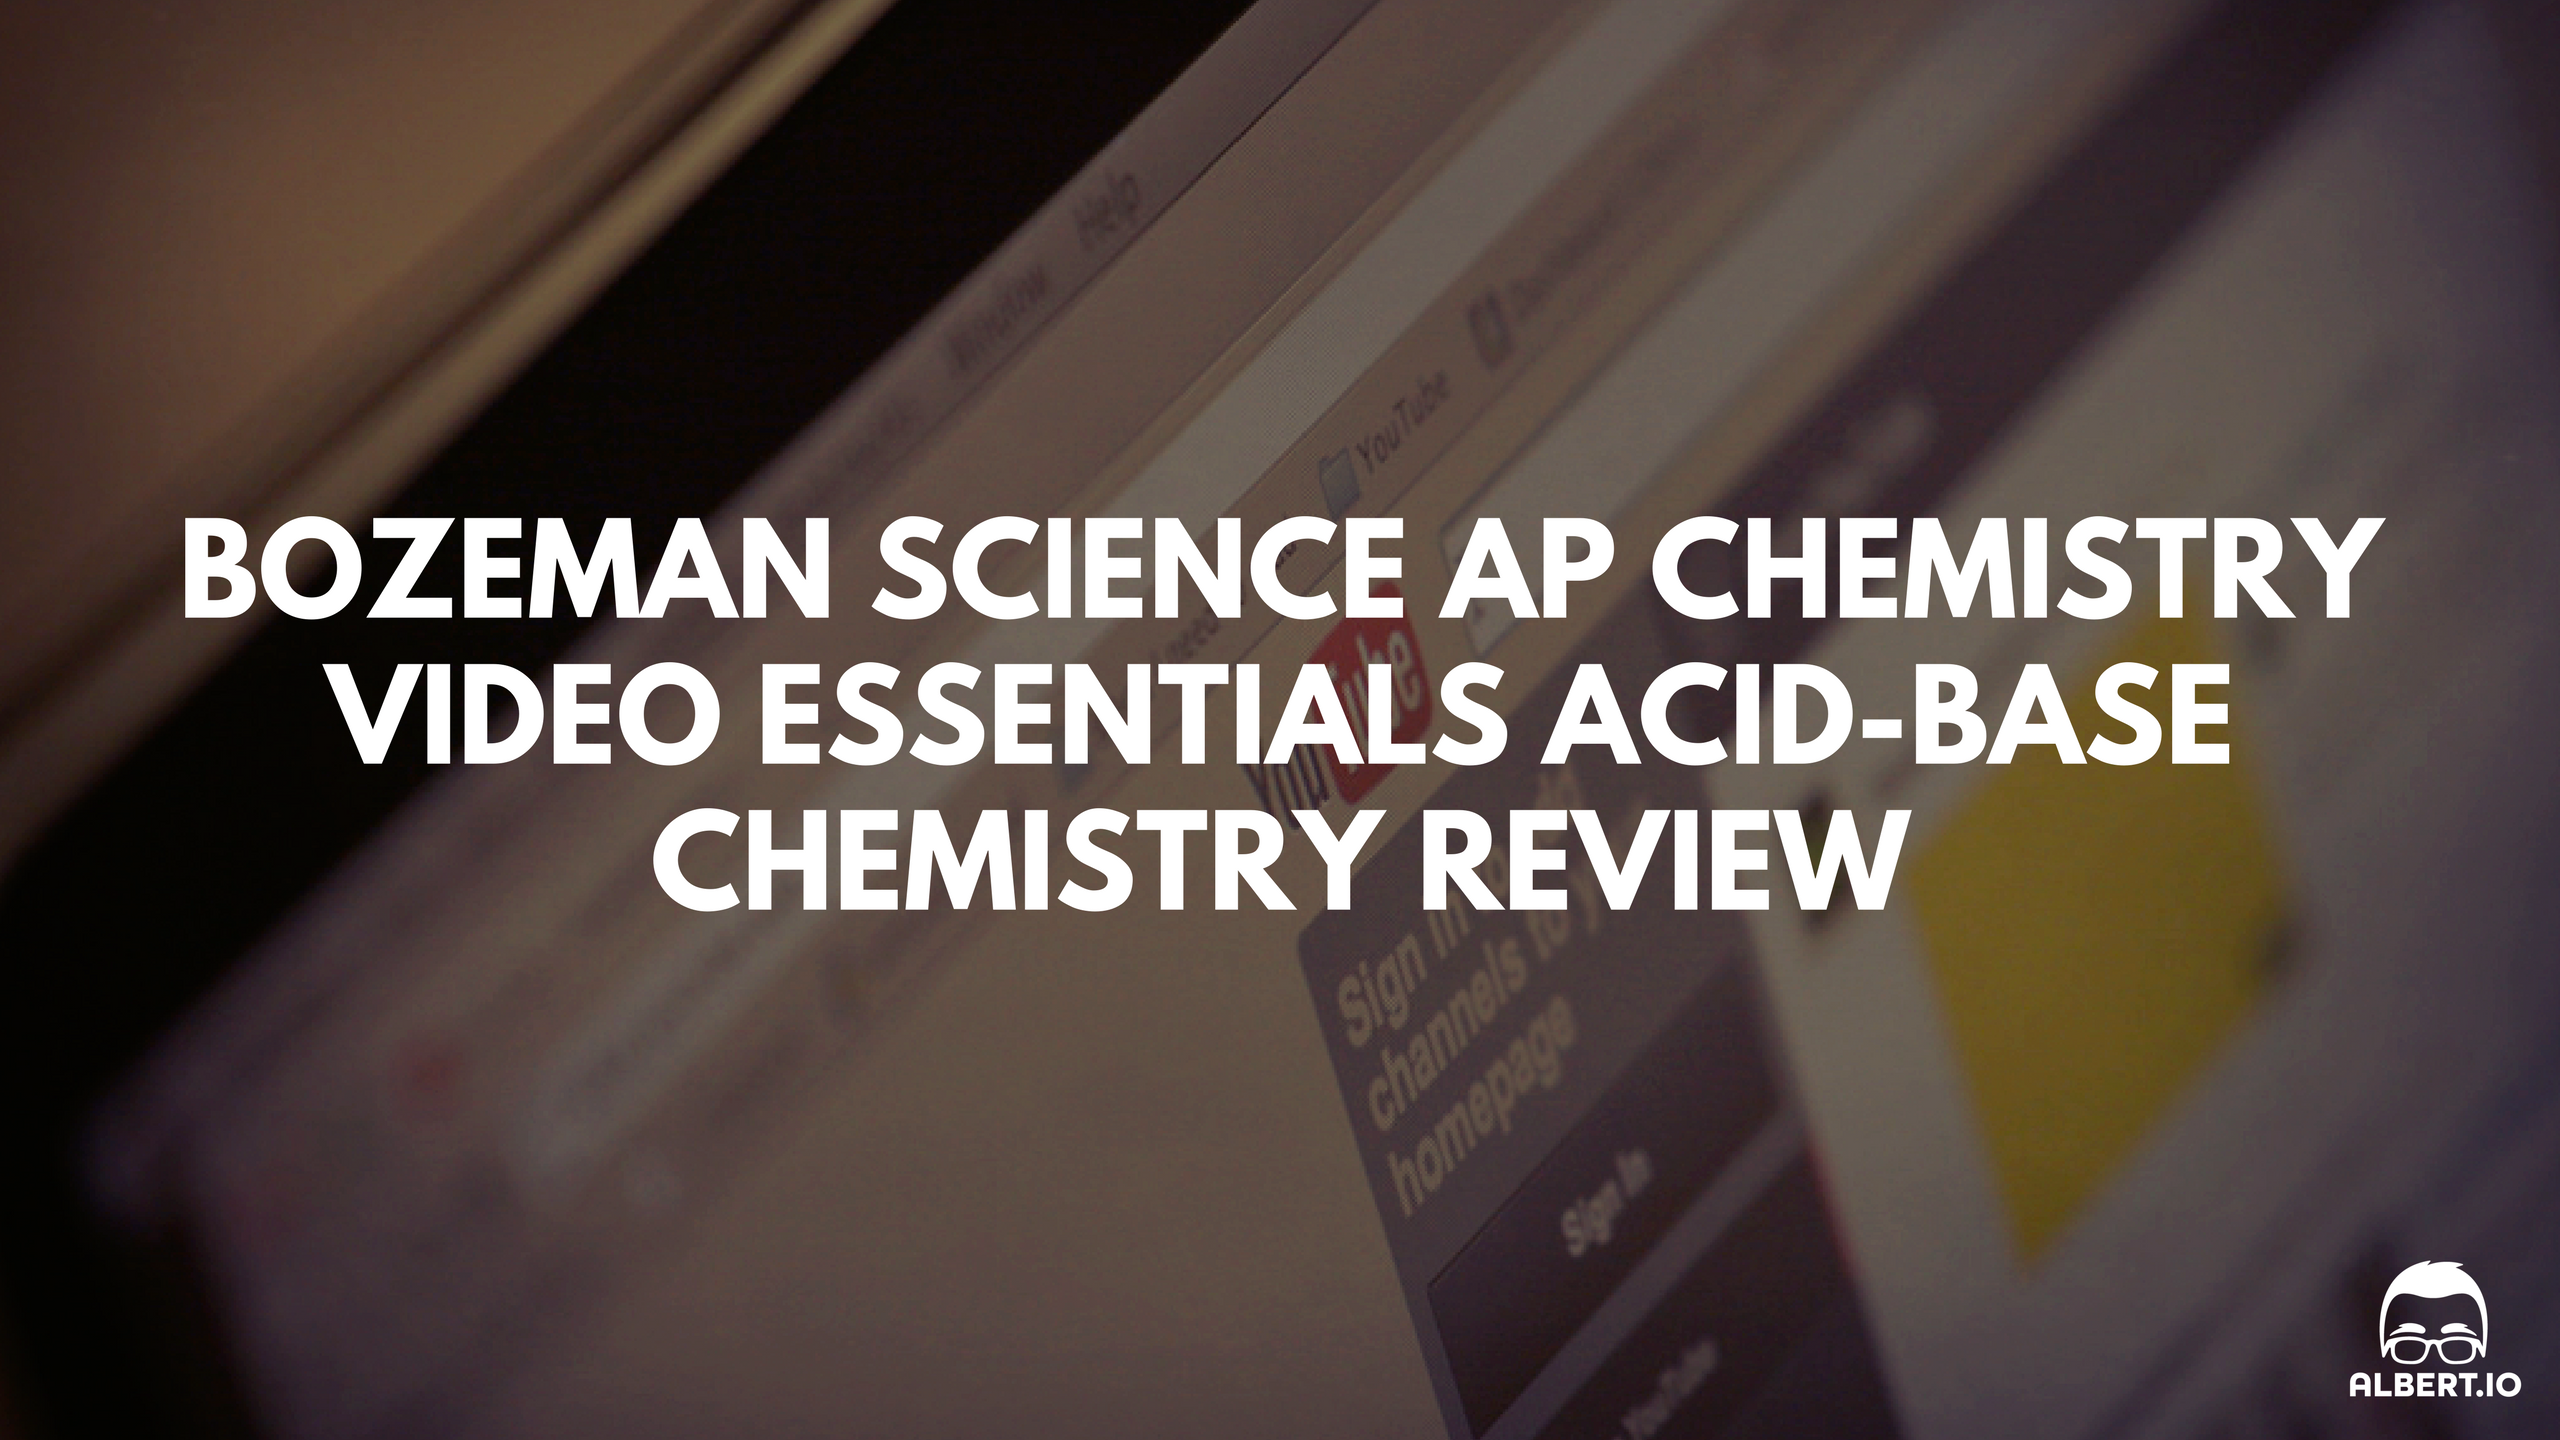 Bozeman Science AP Chemistry Videos